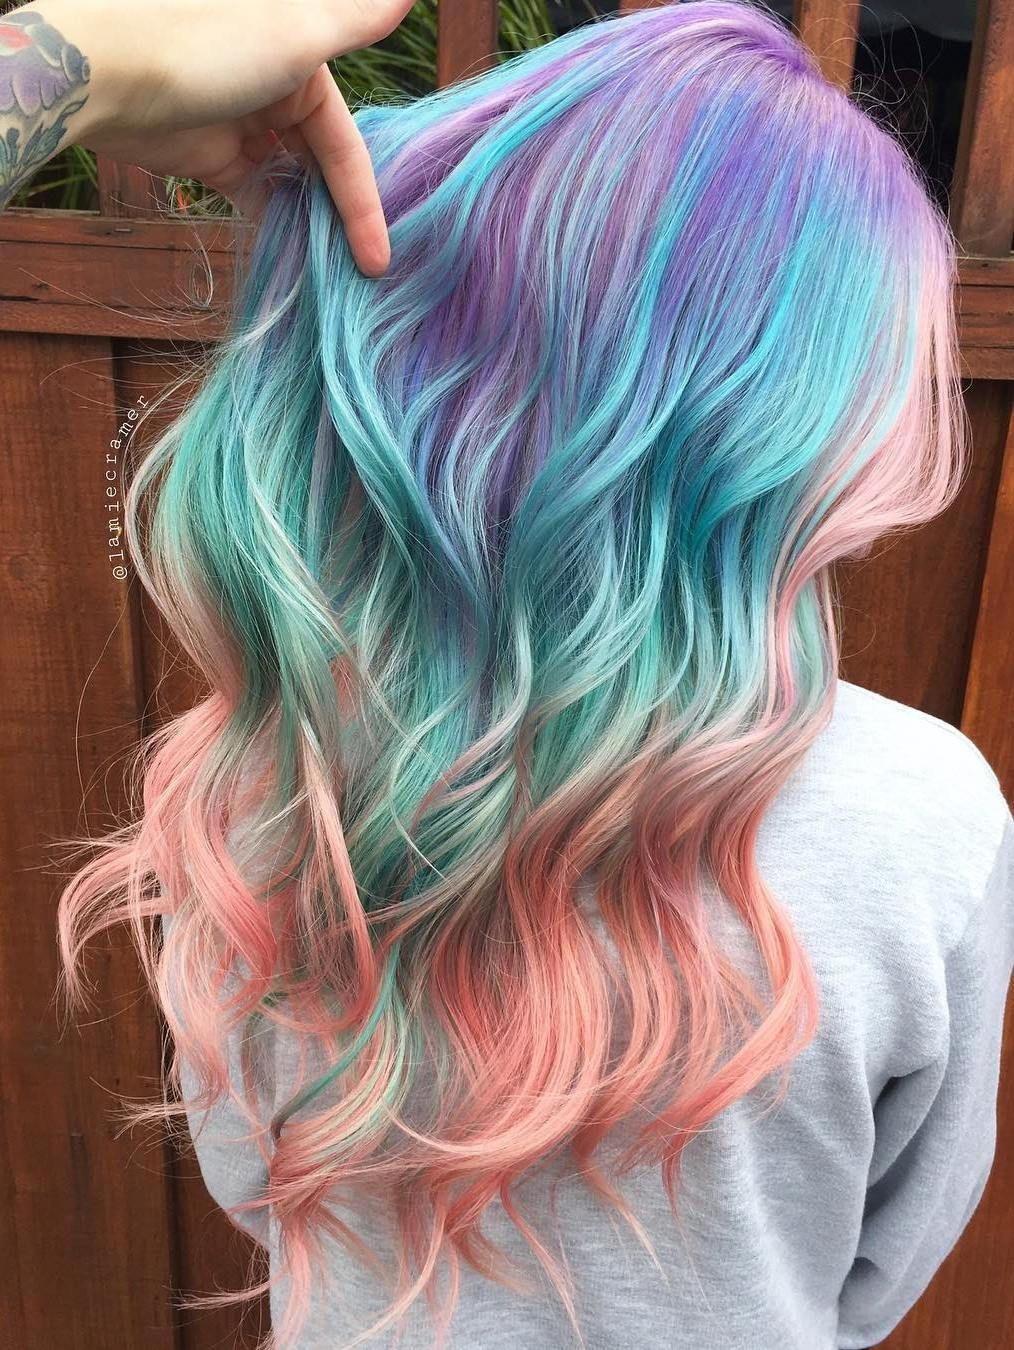 40 cool pastel hair colors in every shade of rainbow | pretty hair